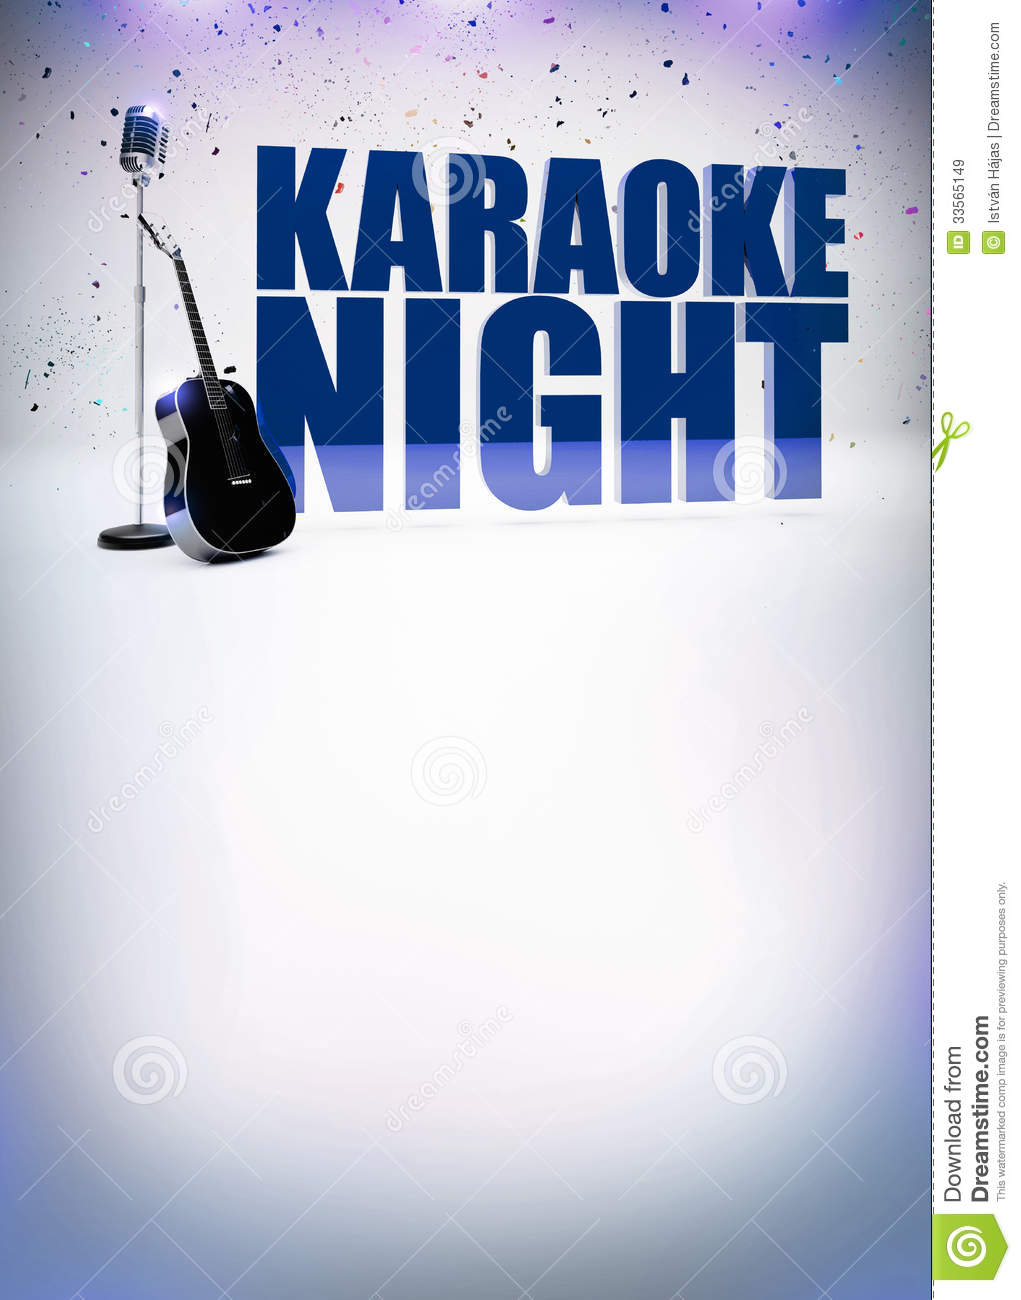 Karaoke Music Poster Royalty Free Stock Images - Image: 33565149